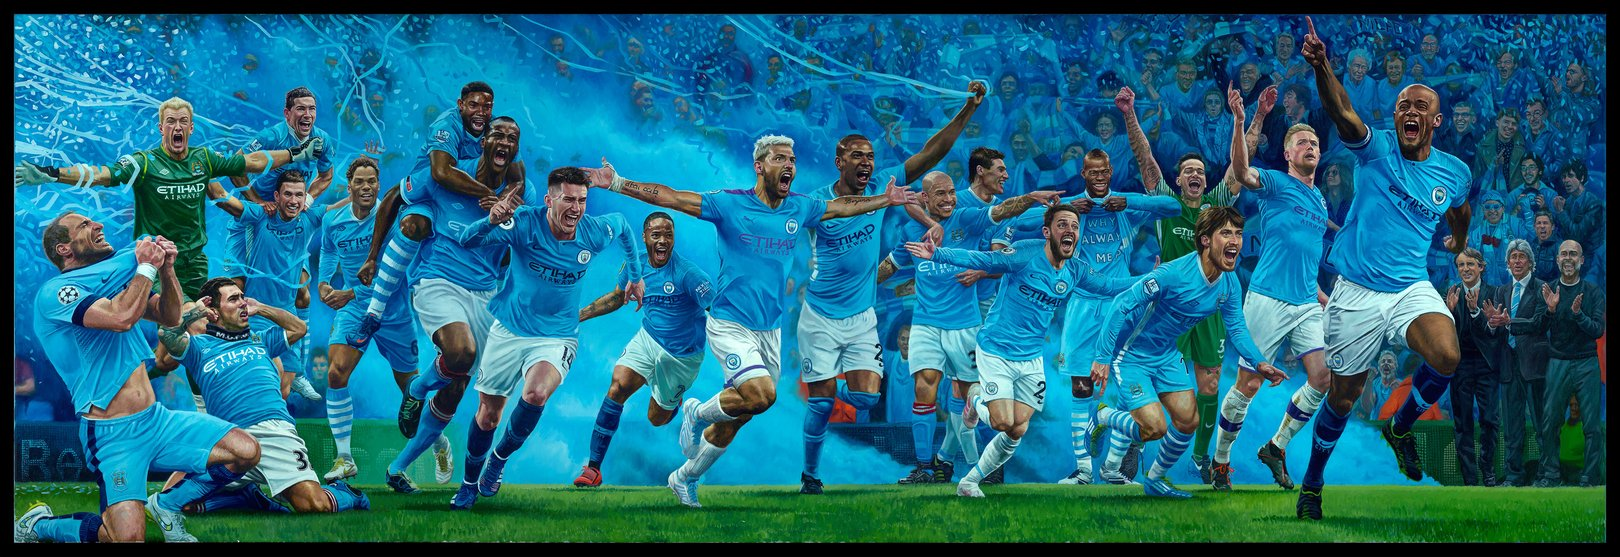 Special Team of the Decade canvas released today